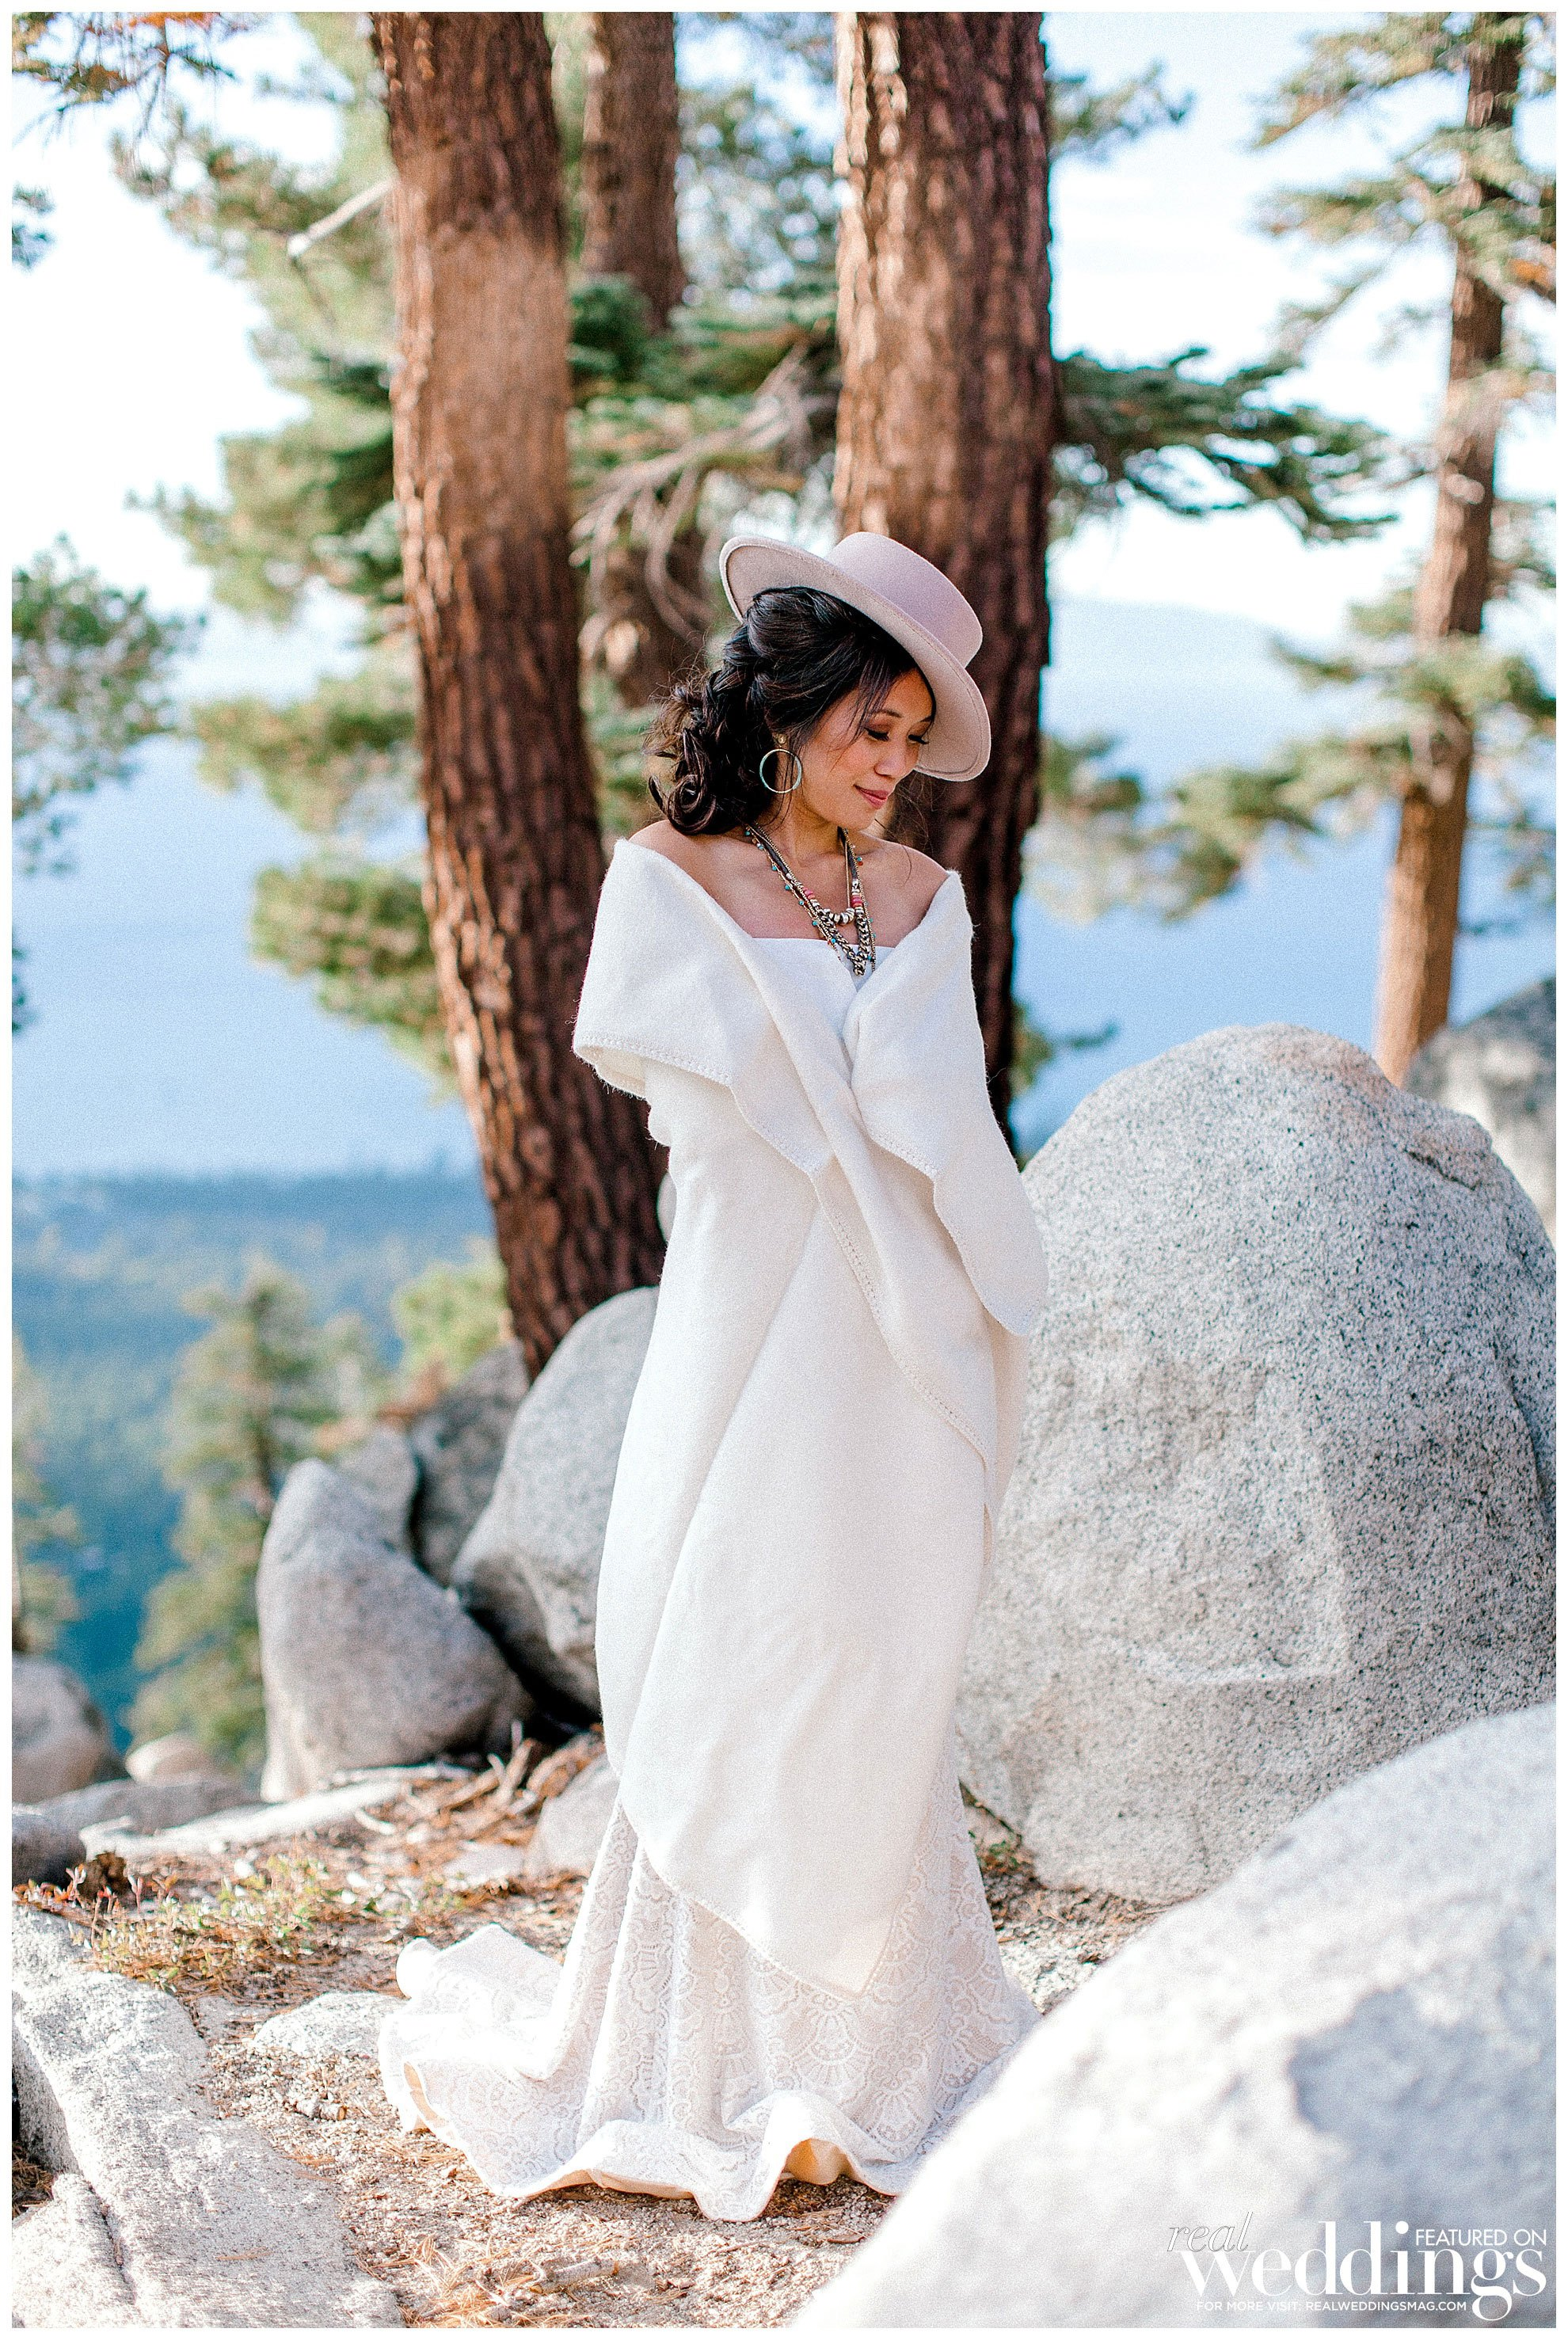 Kathryn-White-Photography-Sacramento-Real-Weddings-Magazine-In-The-Clouds-Layout_0040.jpg